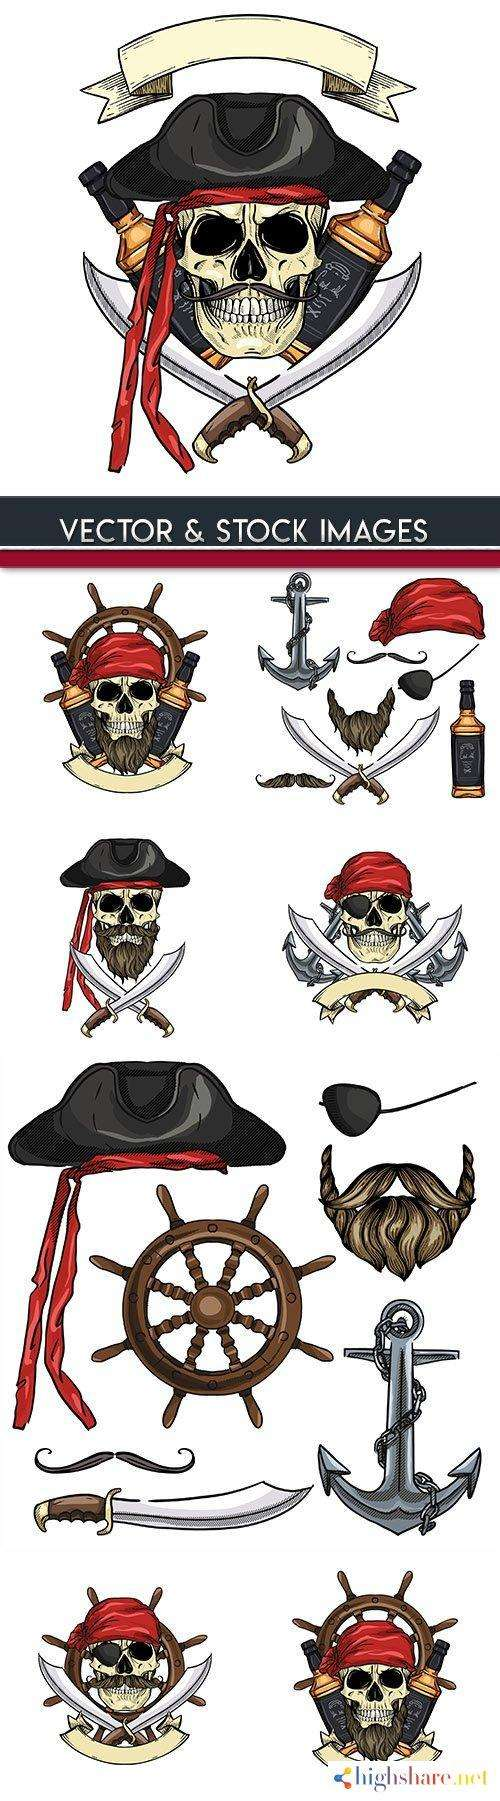 pirates and weapons with clothing painted illustrations 5f427165676a1 - Pirates and weapons with clothing painted illustrations